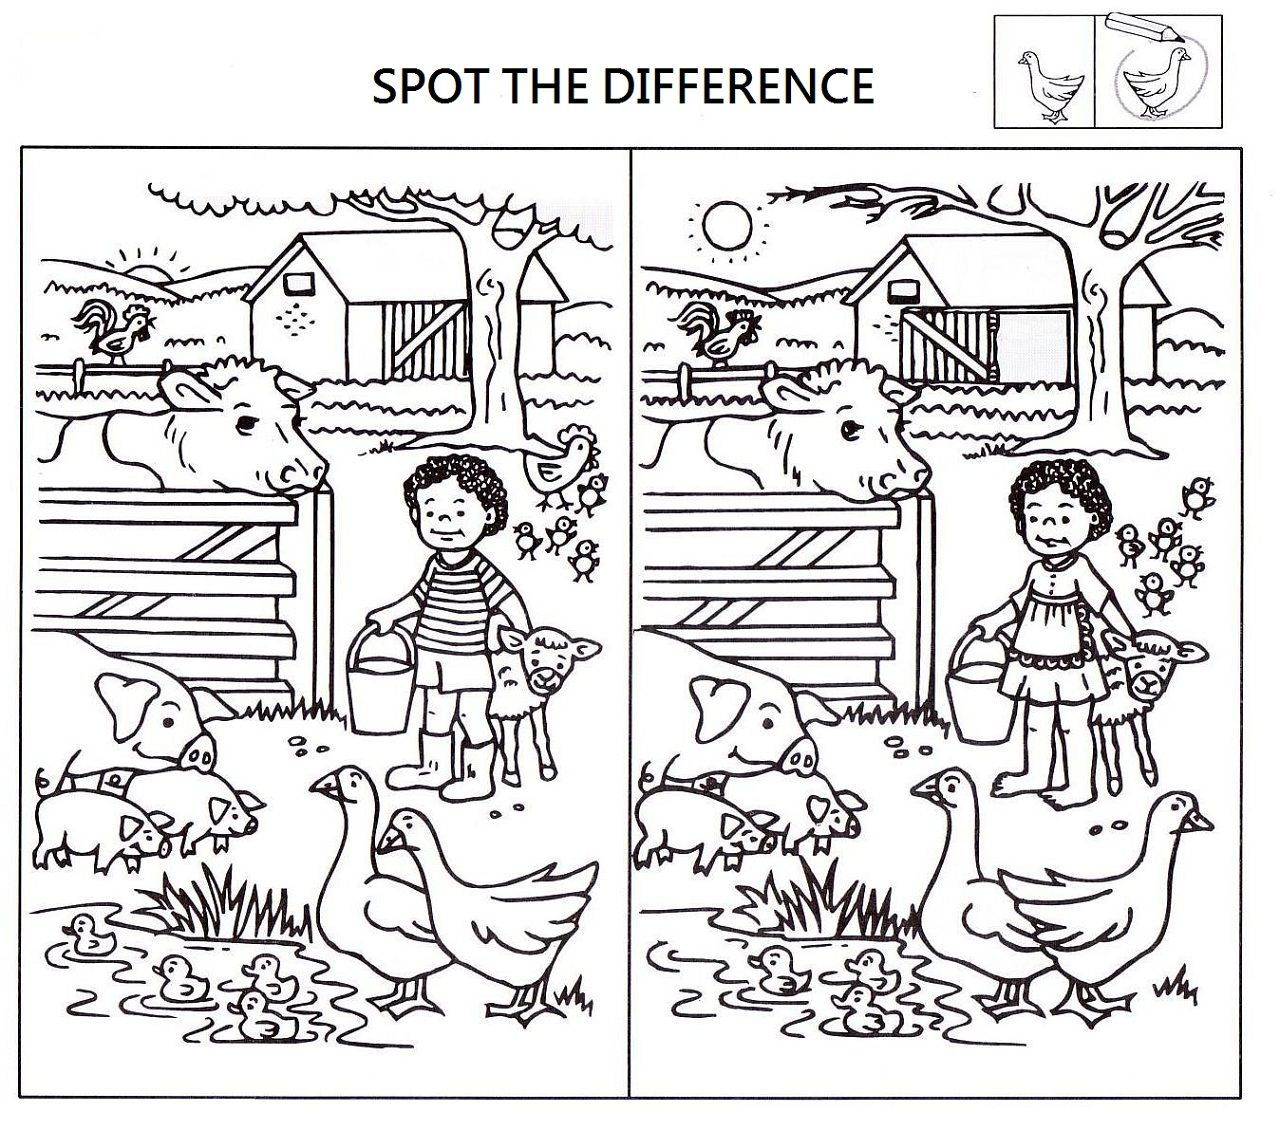 Spot The Difference Worksheets for Kids Activity Shelter – Spot the Difference Worksheets for Kindergarten